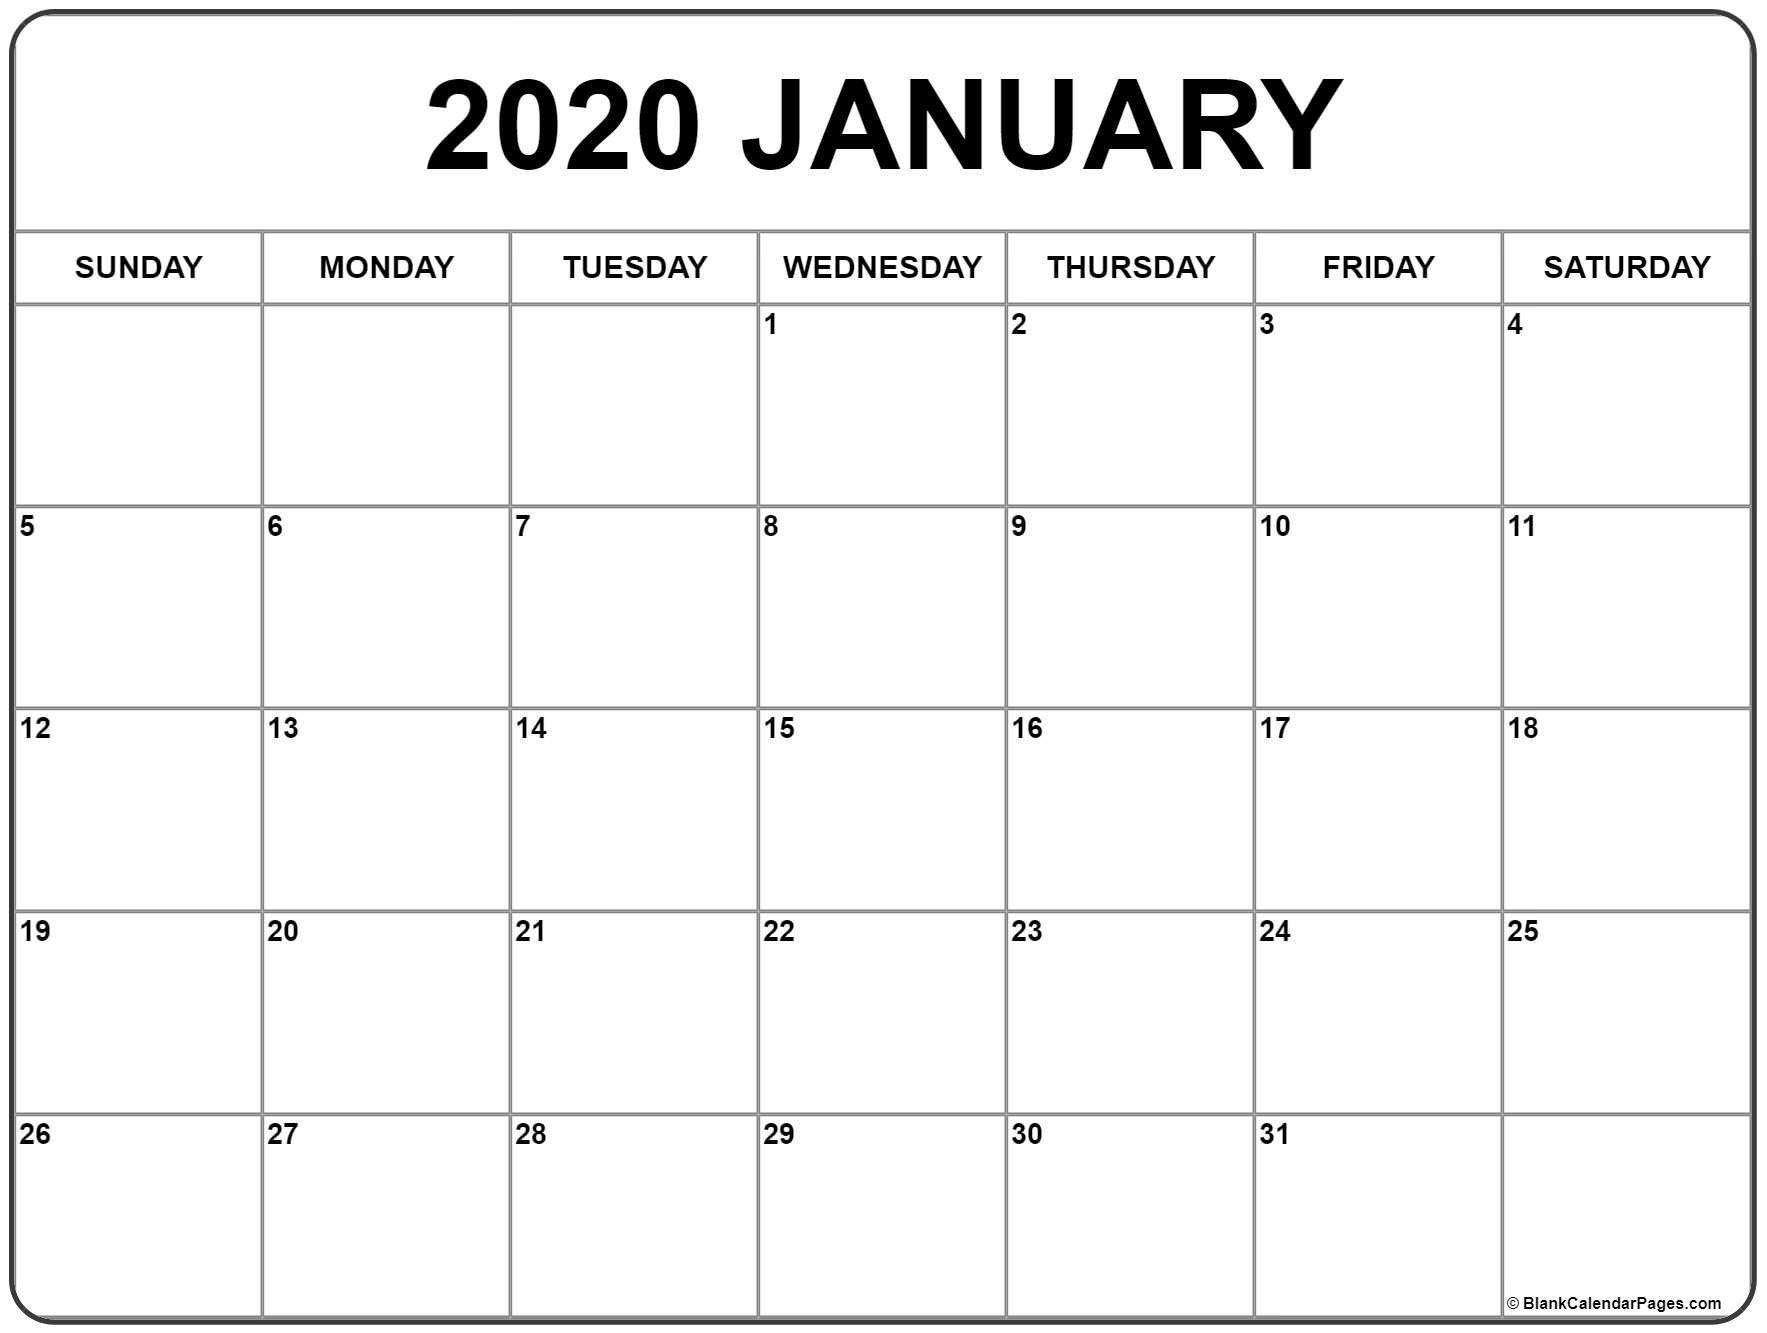 January 2020 Calendar | Free Printable Monthly Calendars-Free Printable Calendar 2020 Bill Paying Monthly